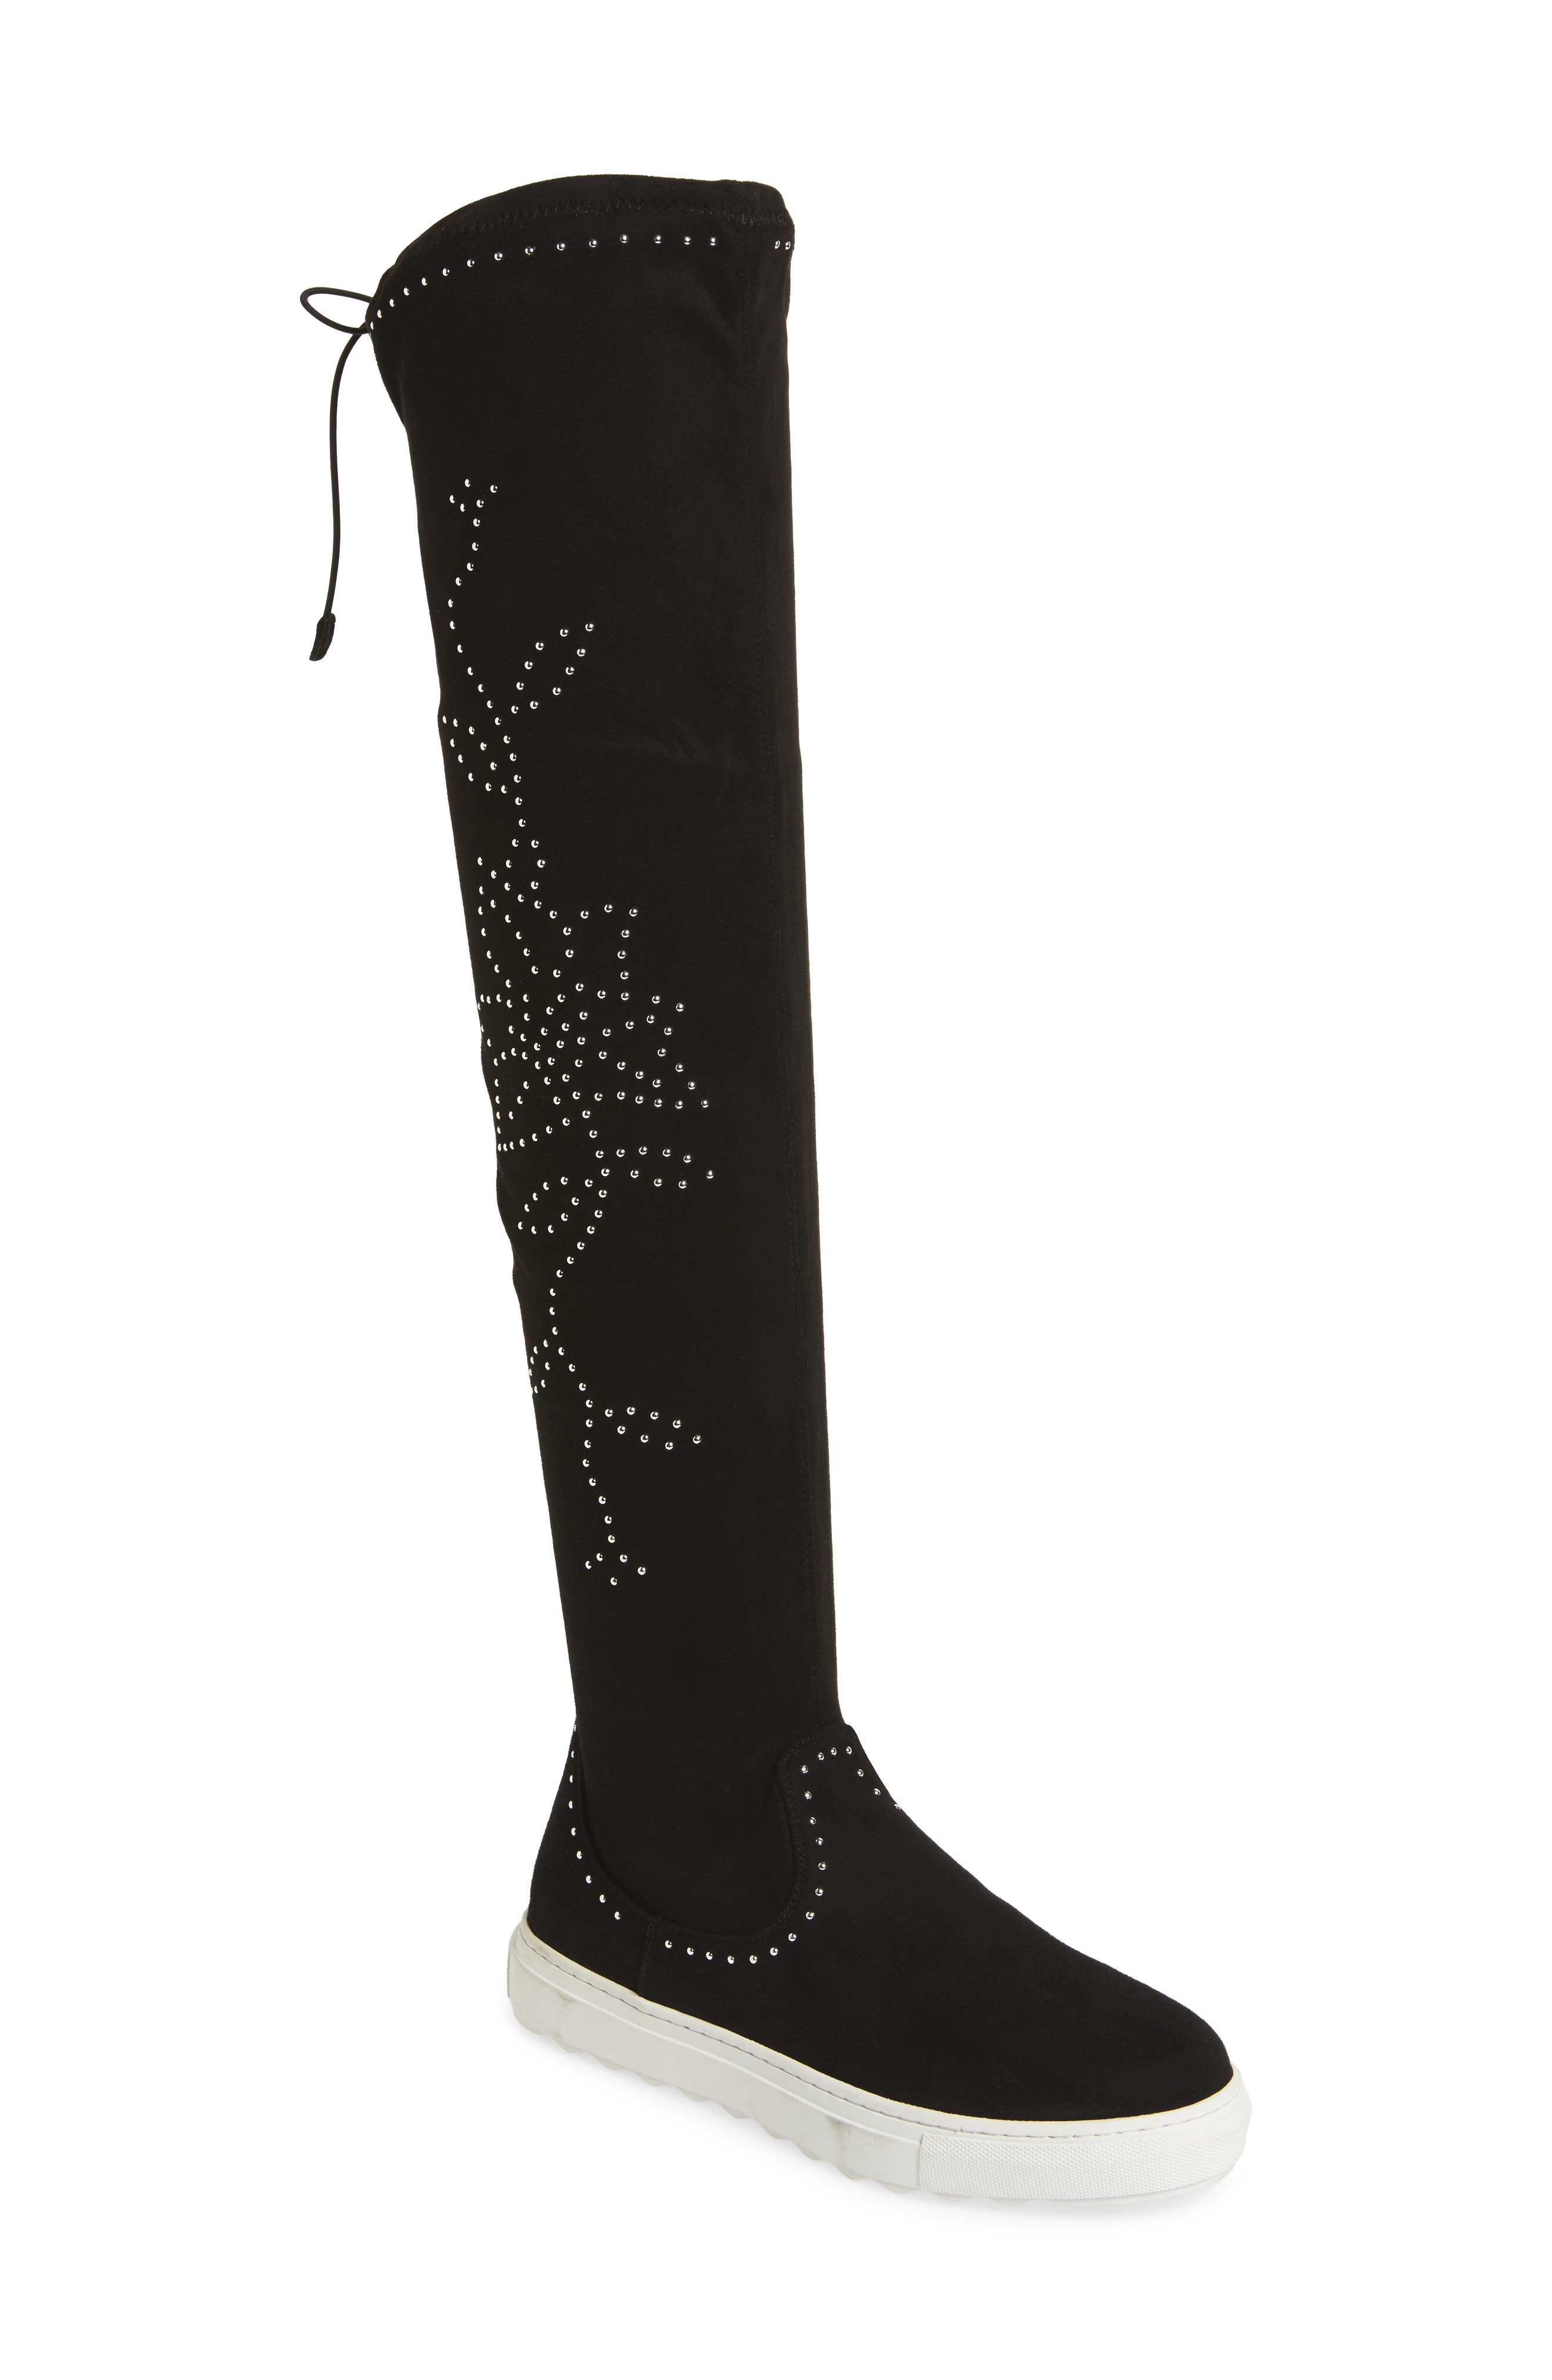 Plentee Over the Knee Boot,                             Main thumbnail 1, color,                             Black Stretch Suede